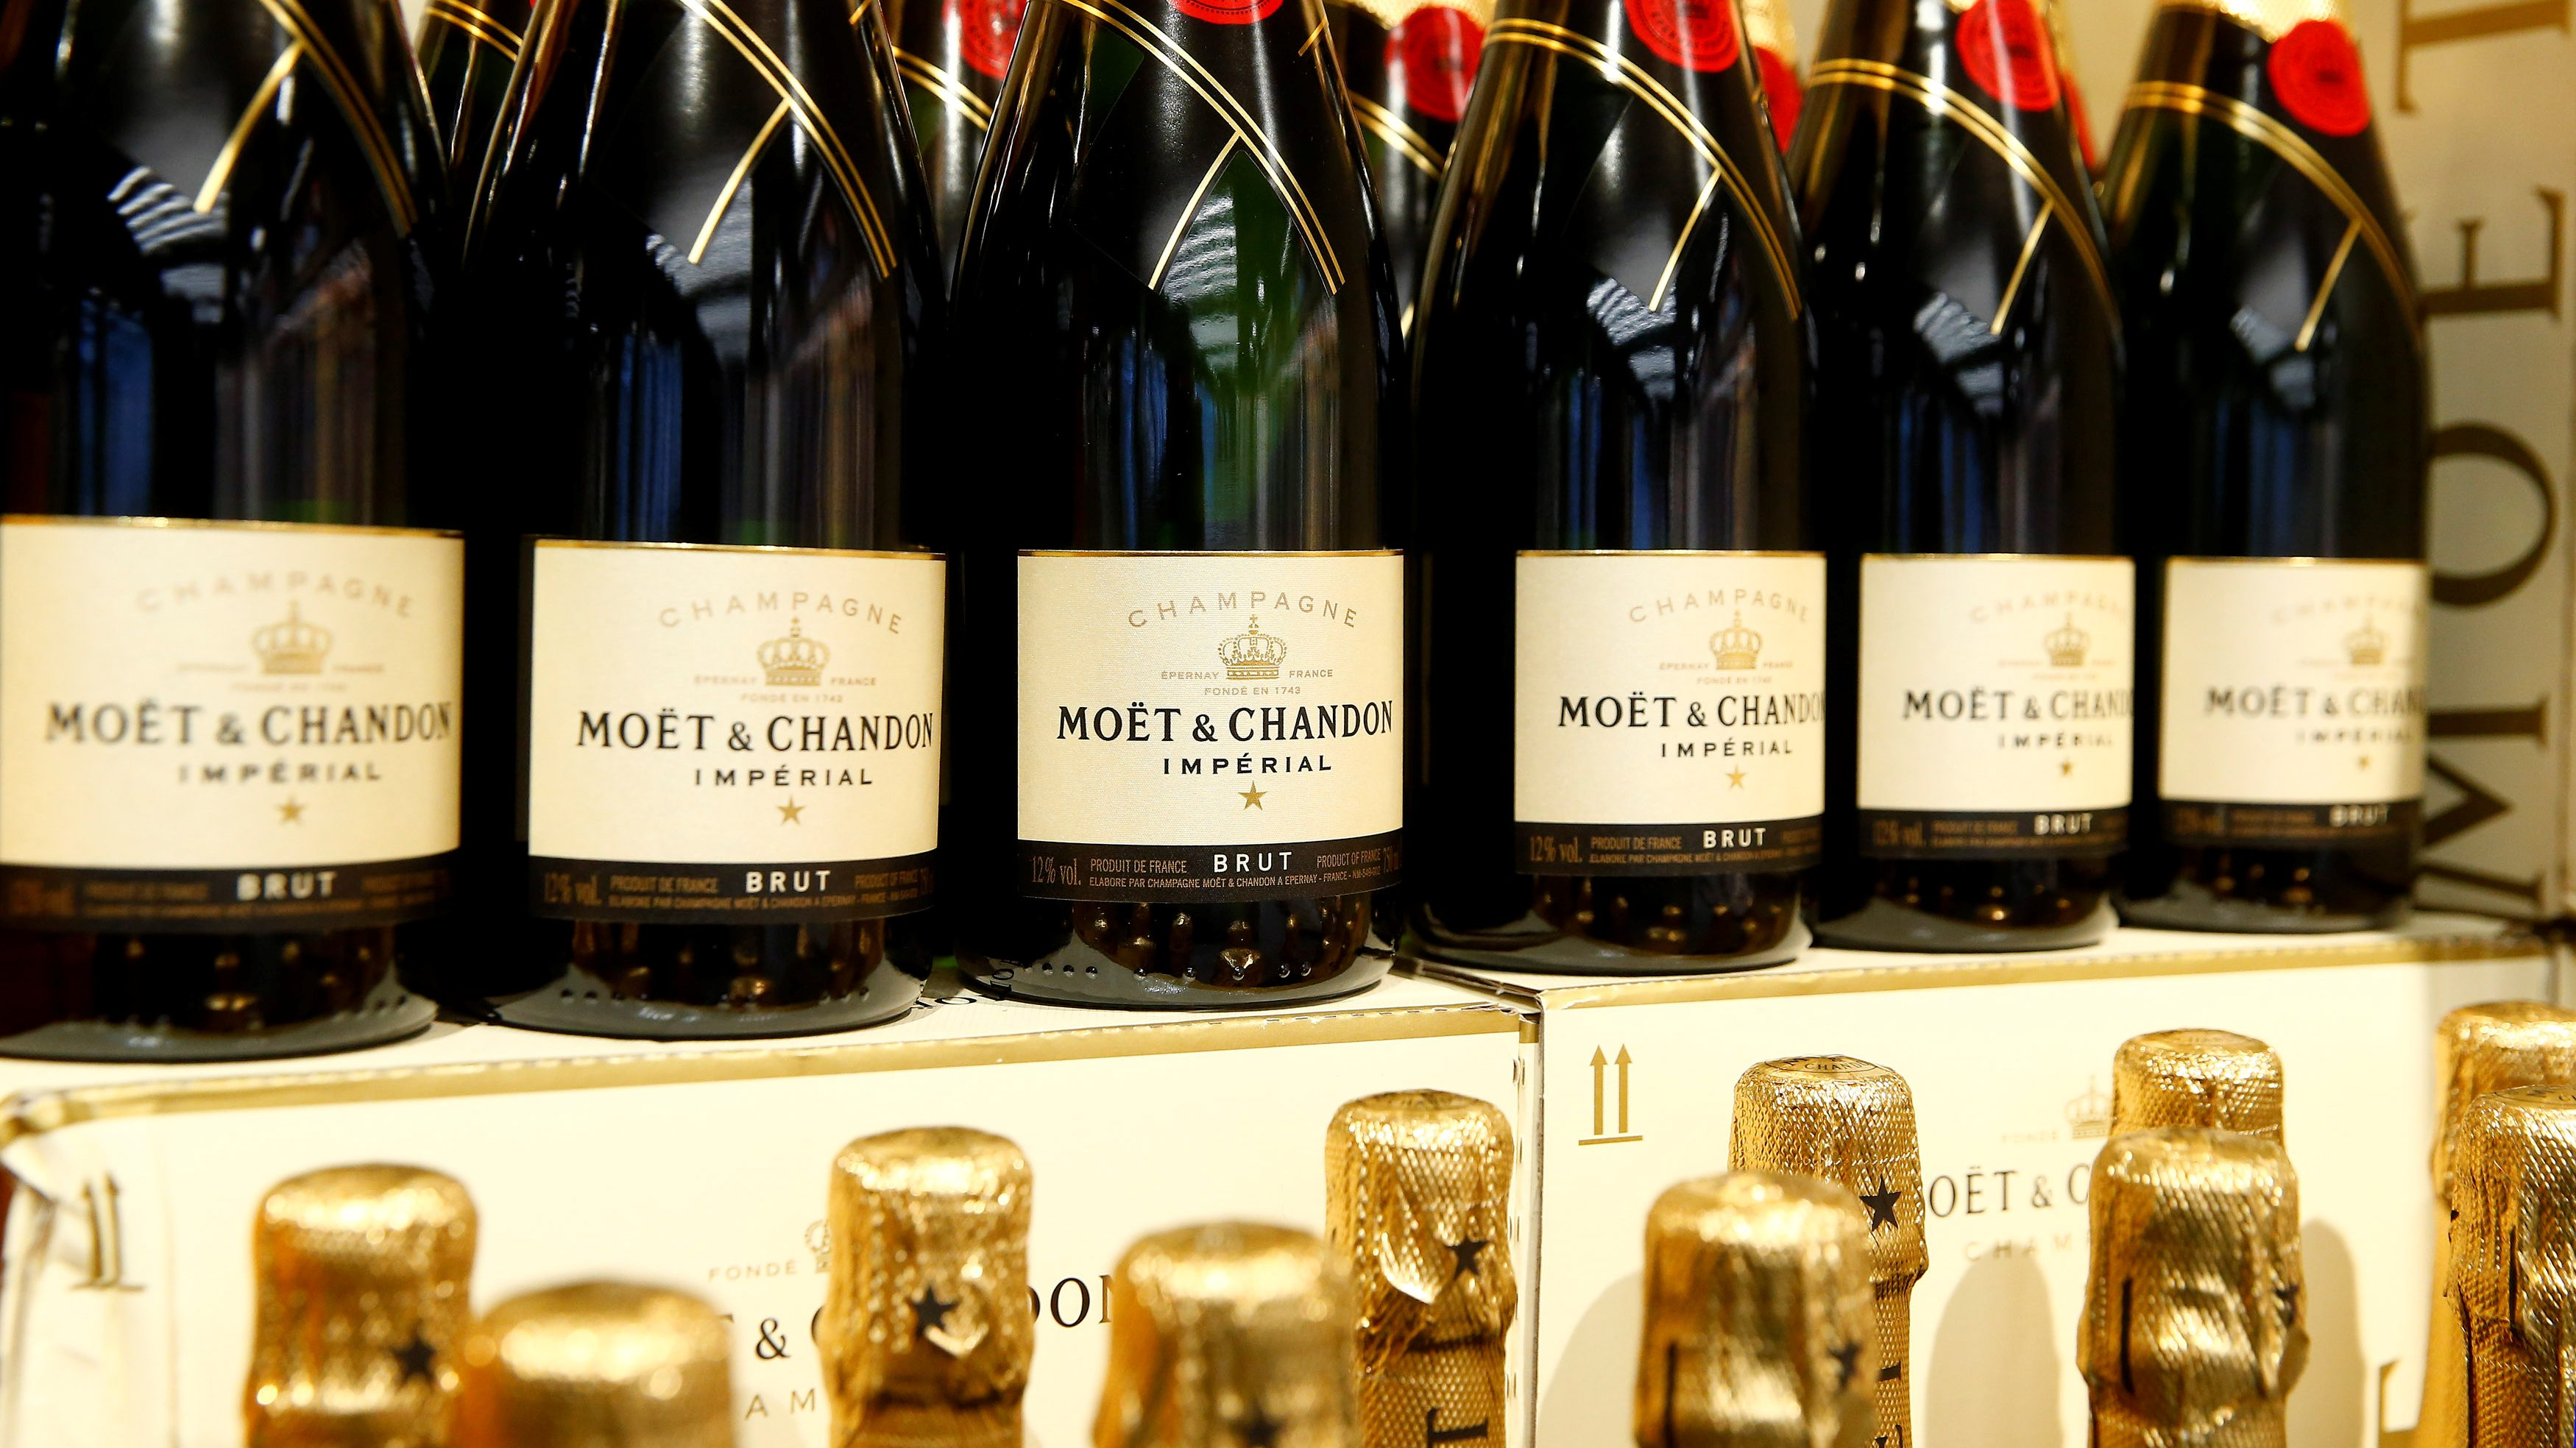 Airbus' subsidies could lead to pricier European champagne, olive oil, and cheese in the US